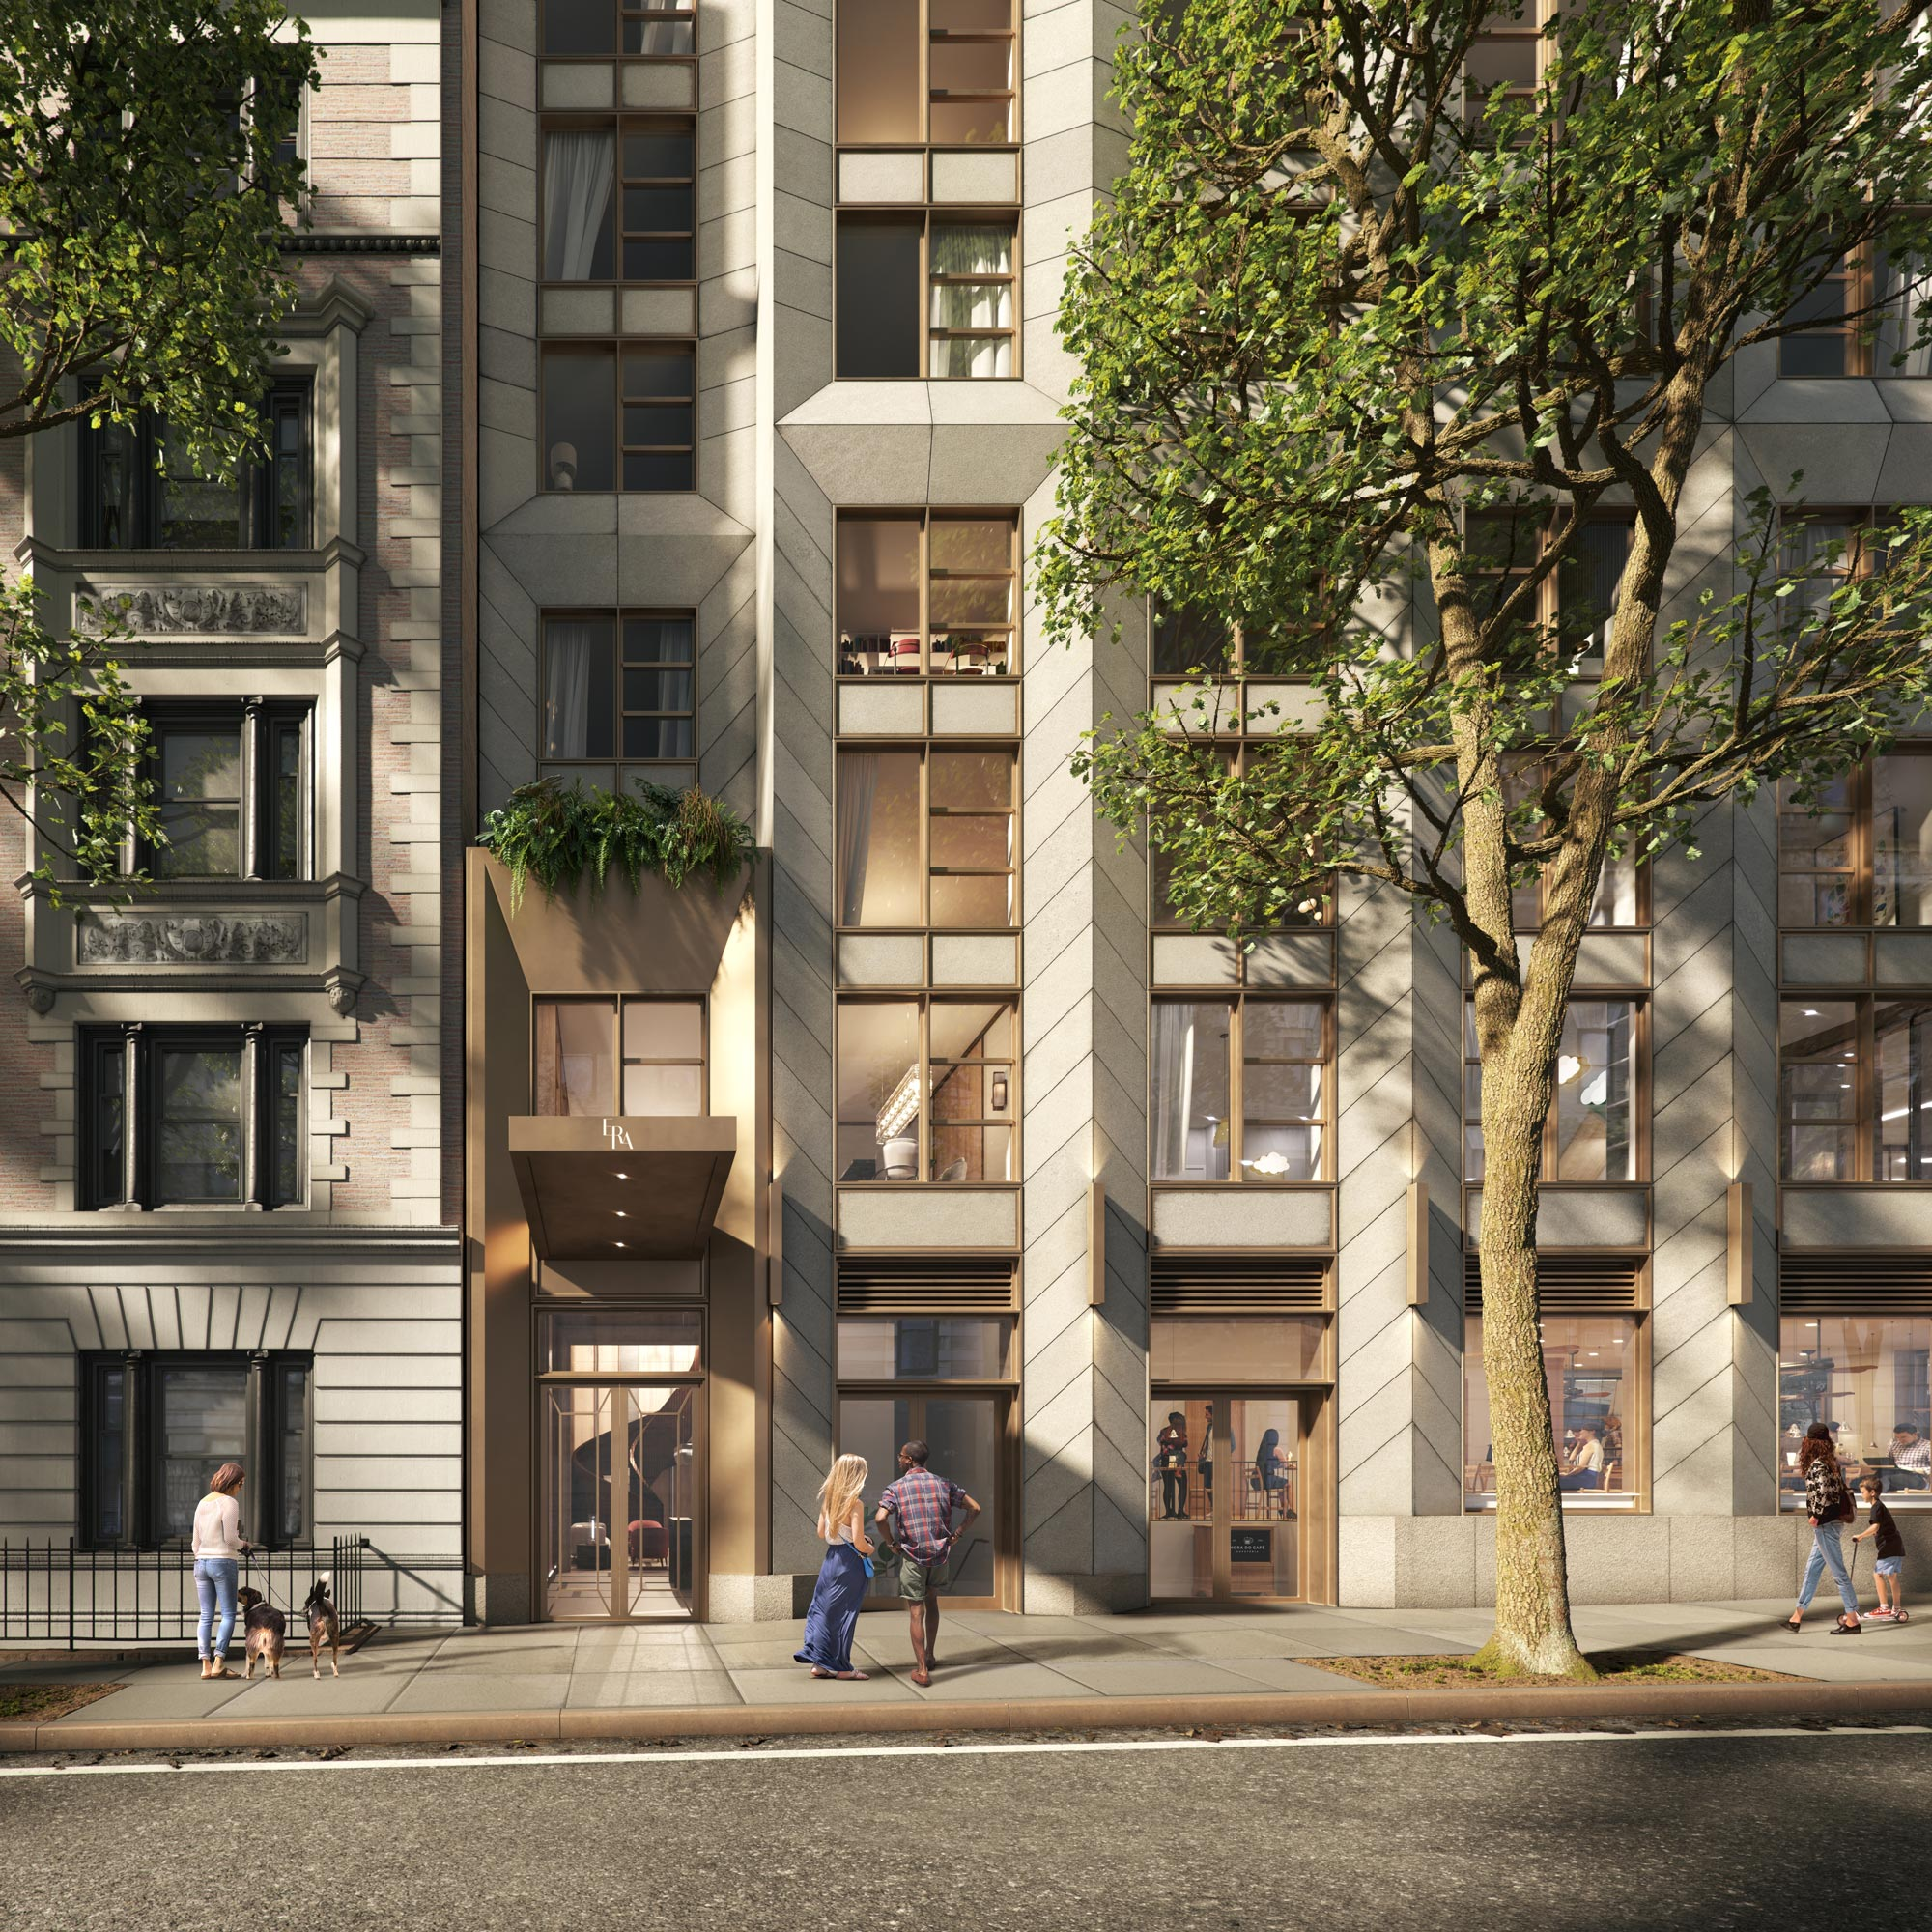 Architectural Rendering of the exterior of the ERA building project located on the Upper West Side in New York City